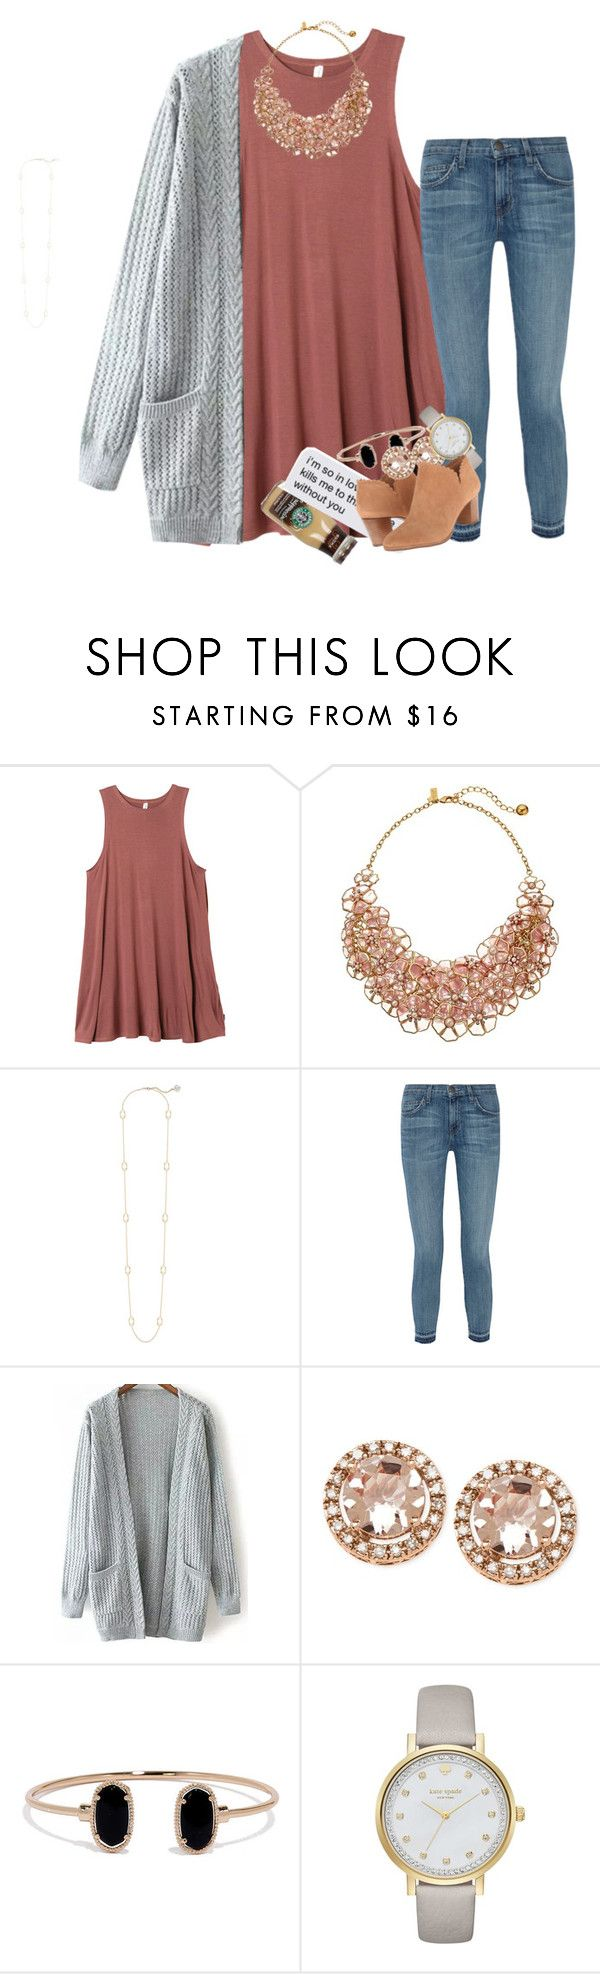 """""""that's embarrassing..."""" by ellaswiftie13 ❤ liked on Polyvore featuring RVCA, Kate Spade, Kendra Scott, Current/Elliott, LULUS and Jack Rogers"""